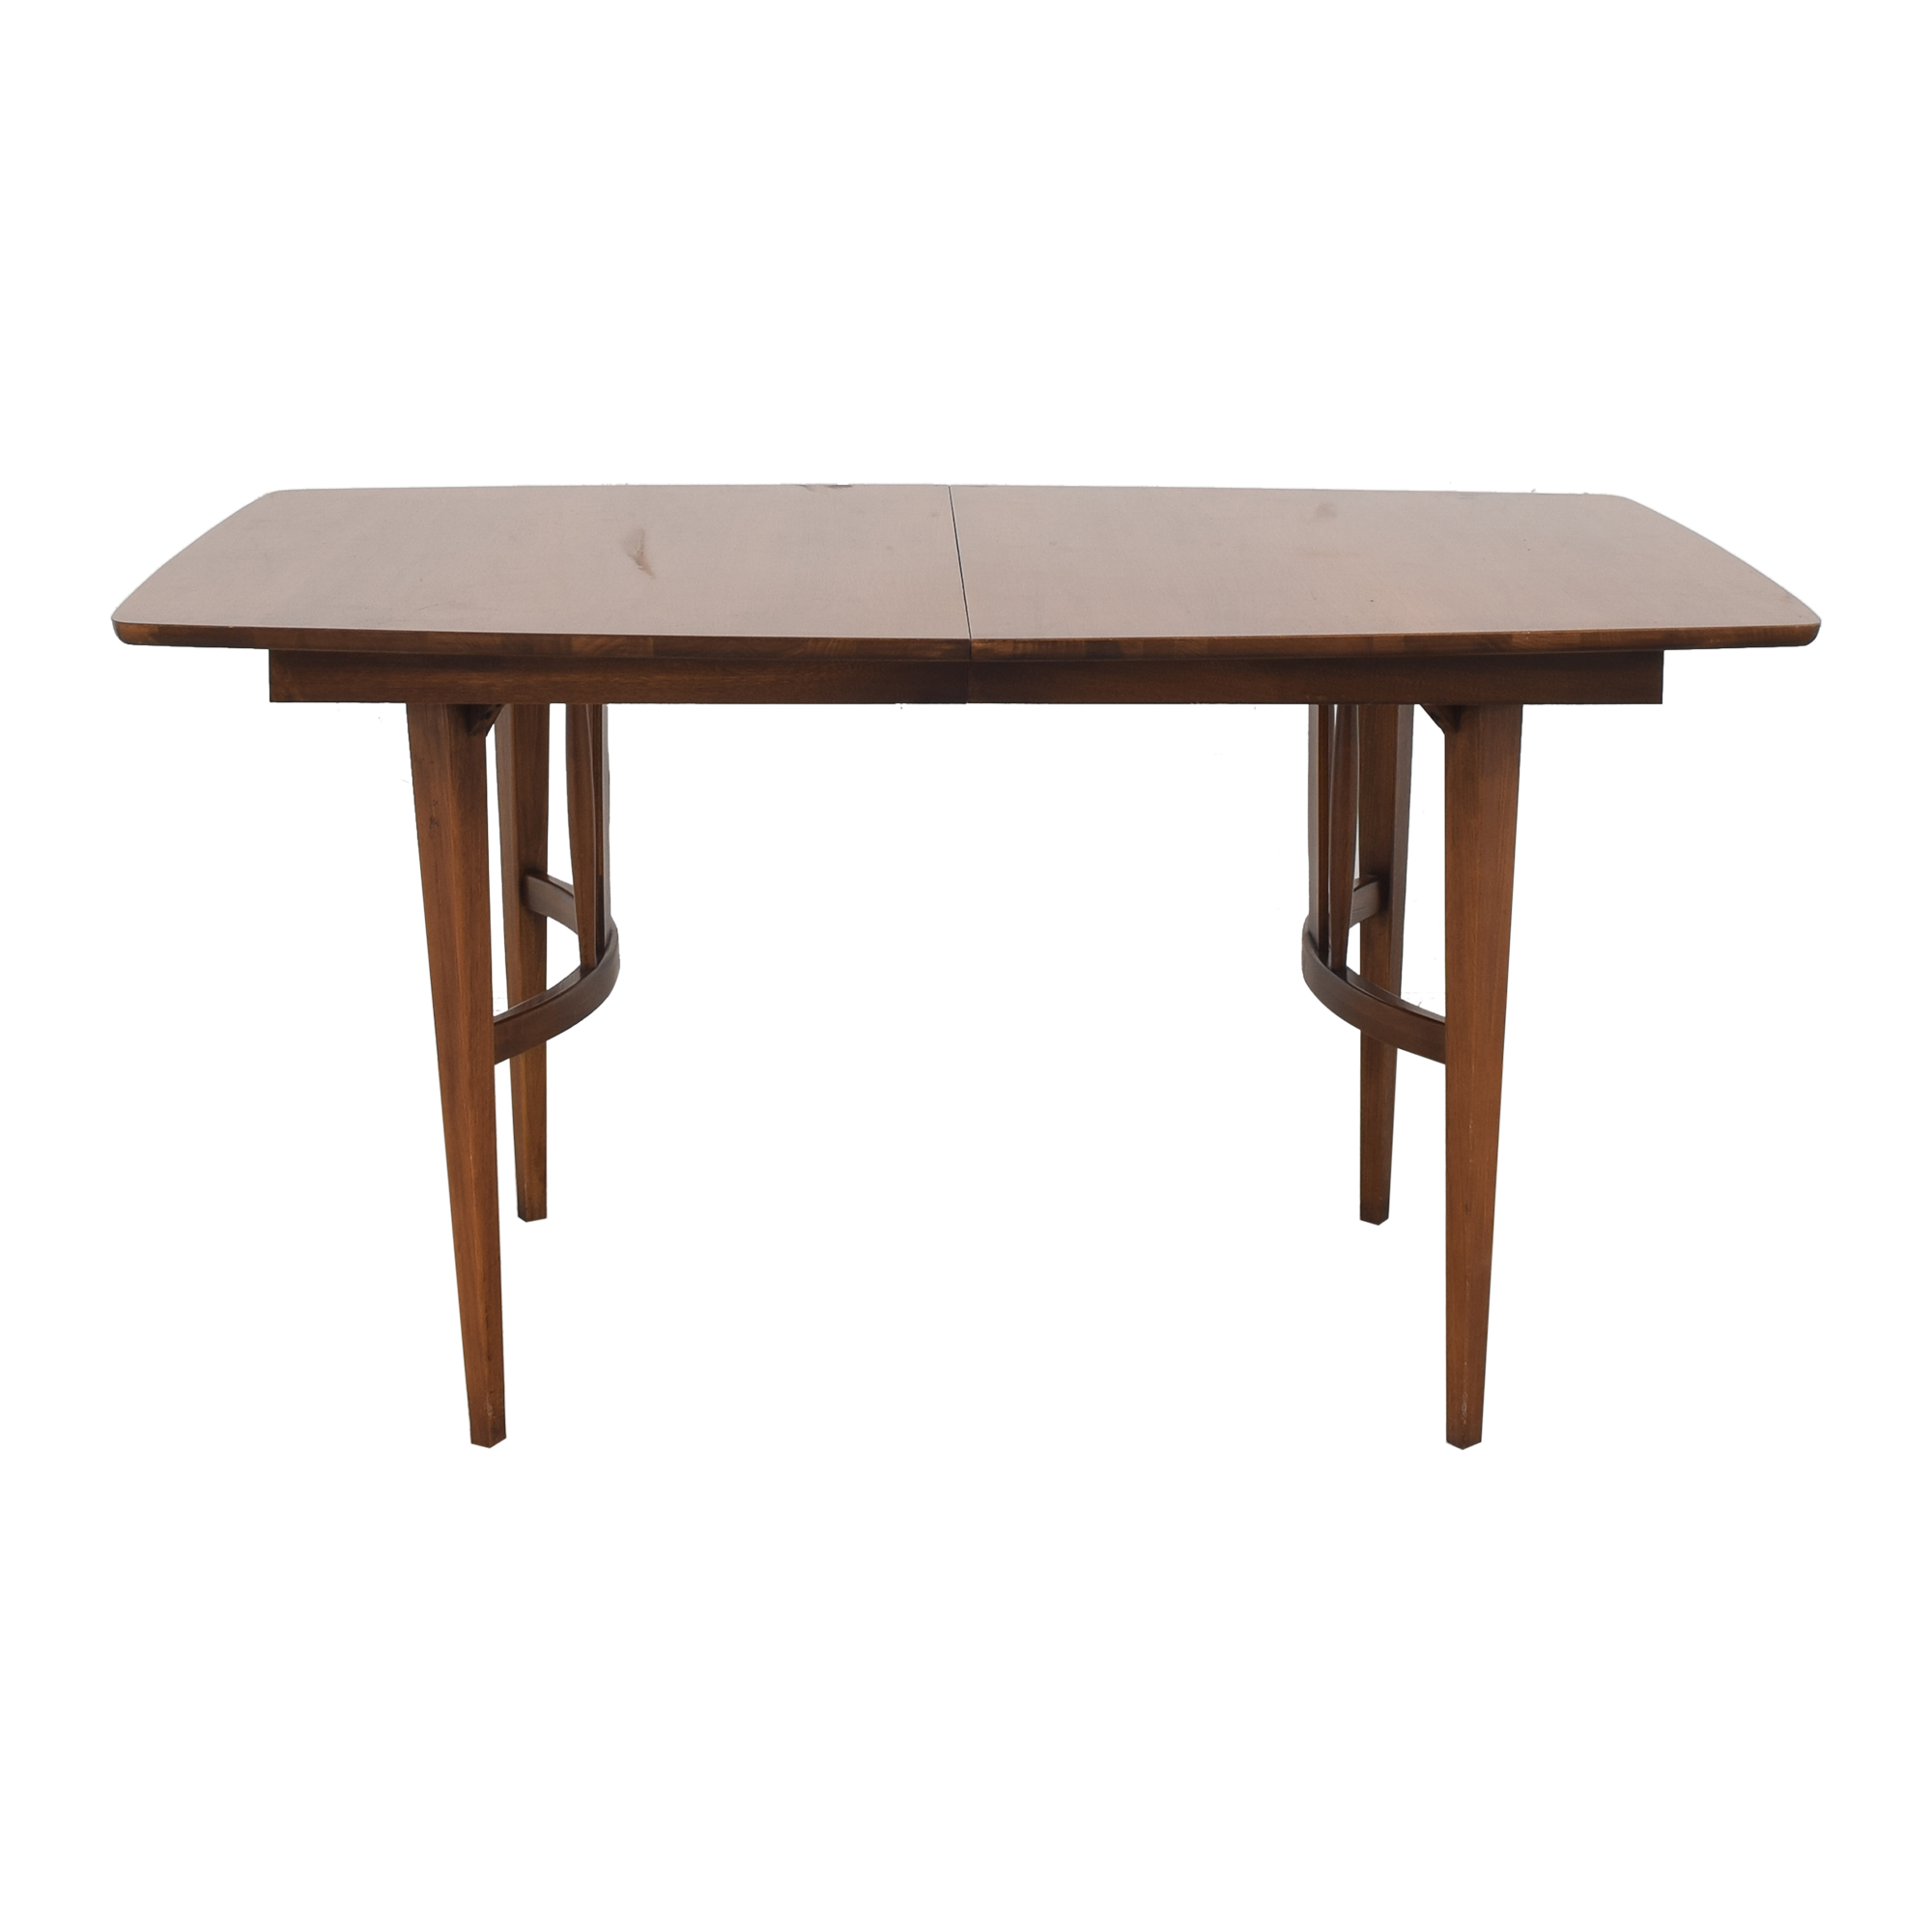 Jefferson Wood Working Extendable Dining Table / Dinner Tables